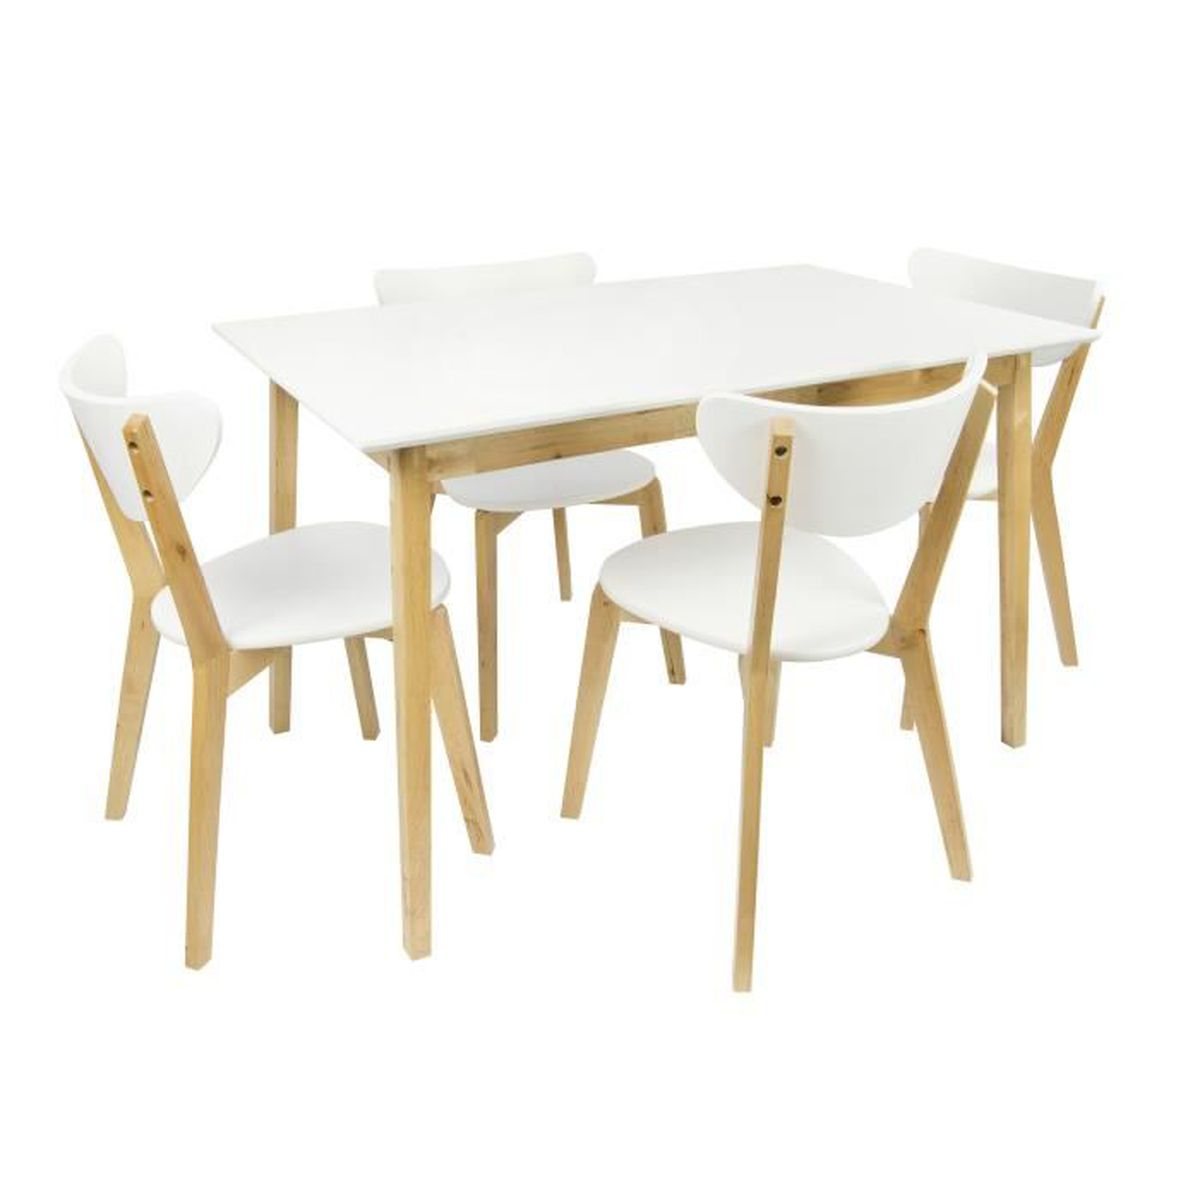 table en bois avec 4 chaises naturel table a manger achat vente table a manger complet table. Black Bedroom Furniture Sets. Home Design Ideas